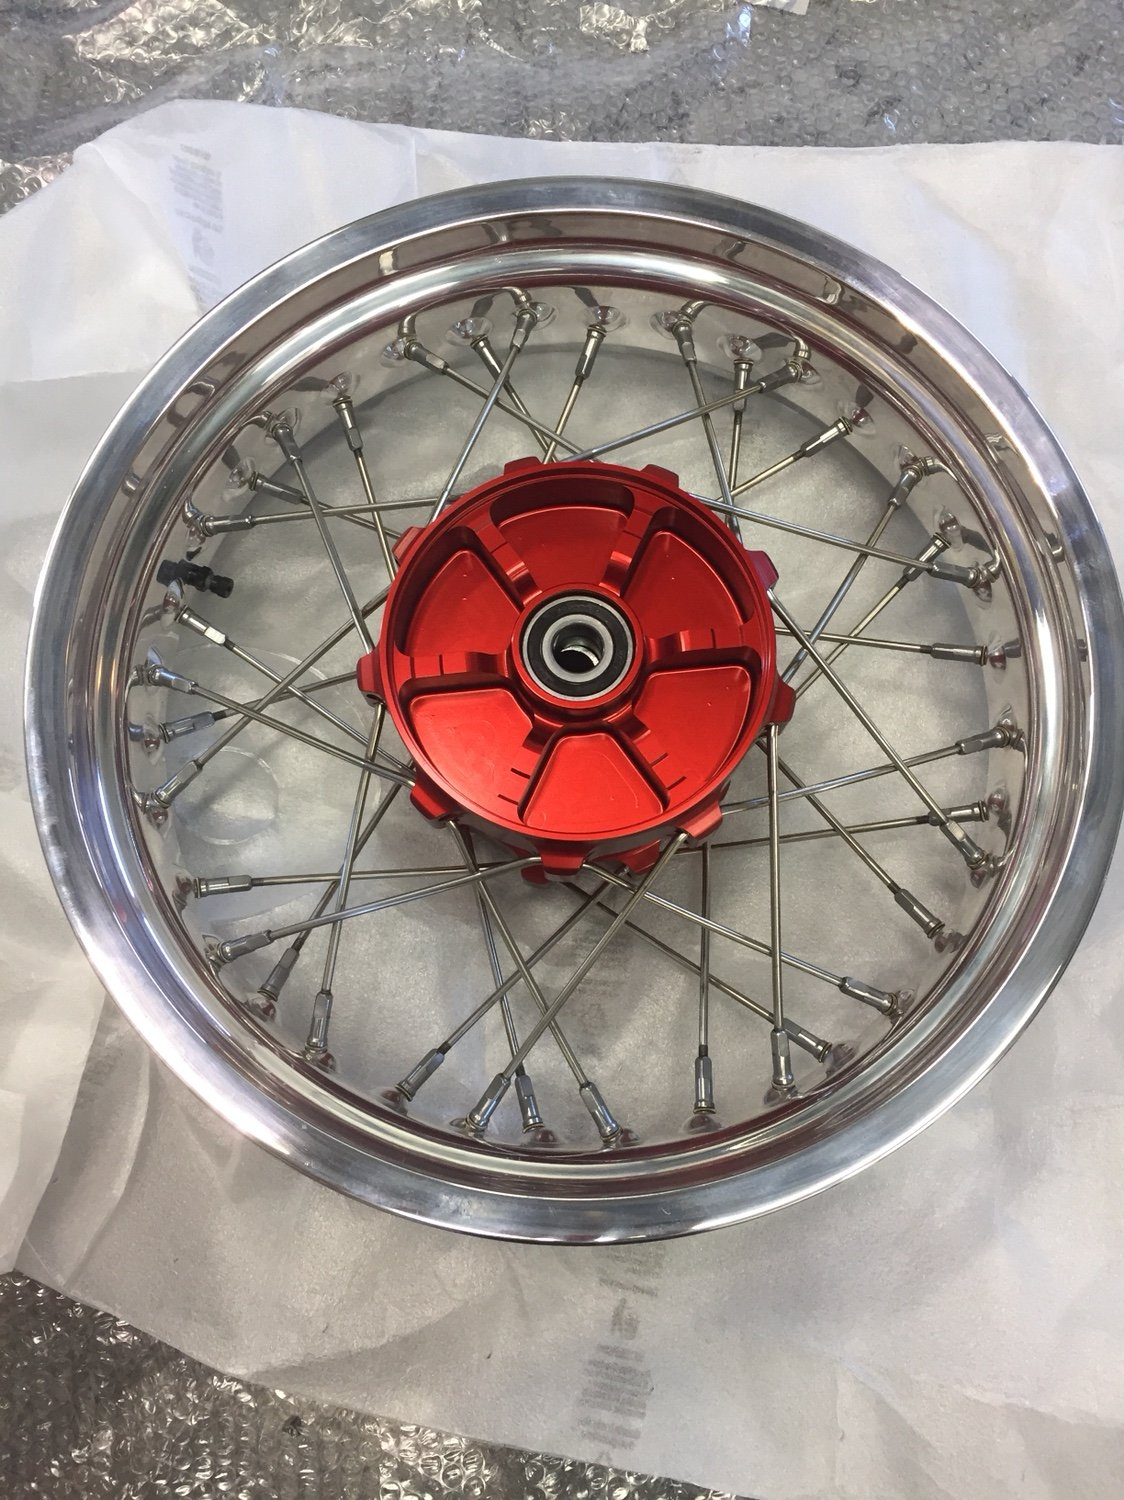 Finally I Received My New Alpina Wheels Triumph Forum Triumph - Alpina motorcycle wheels